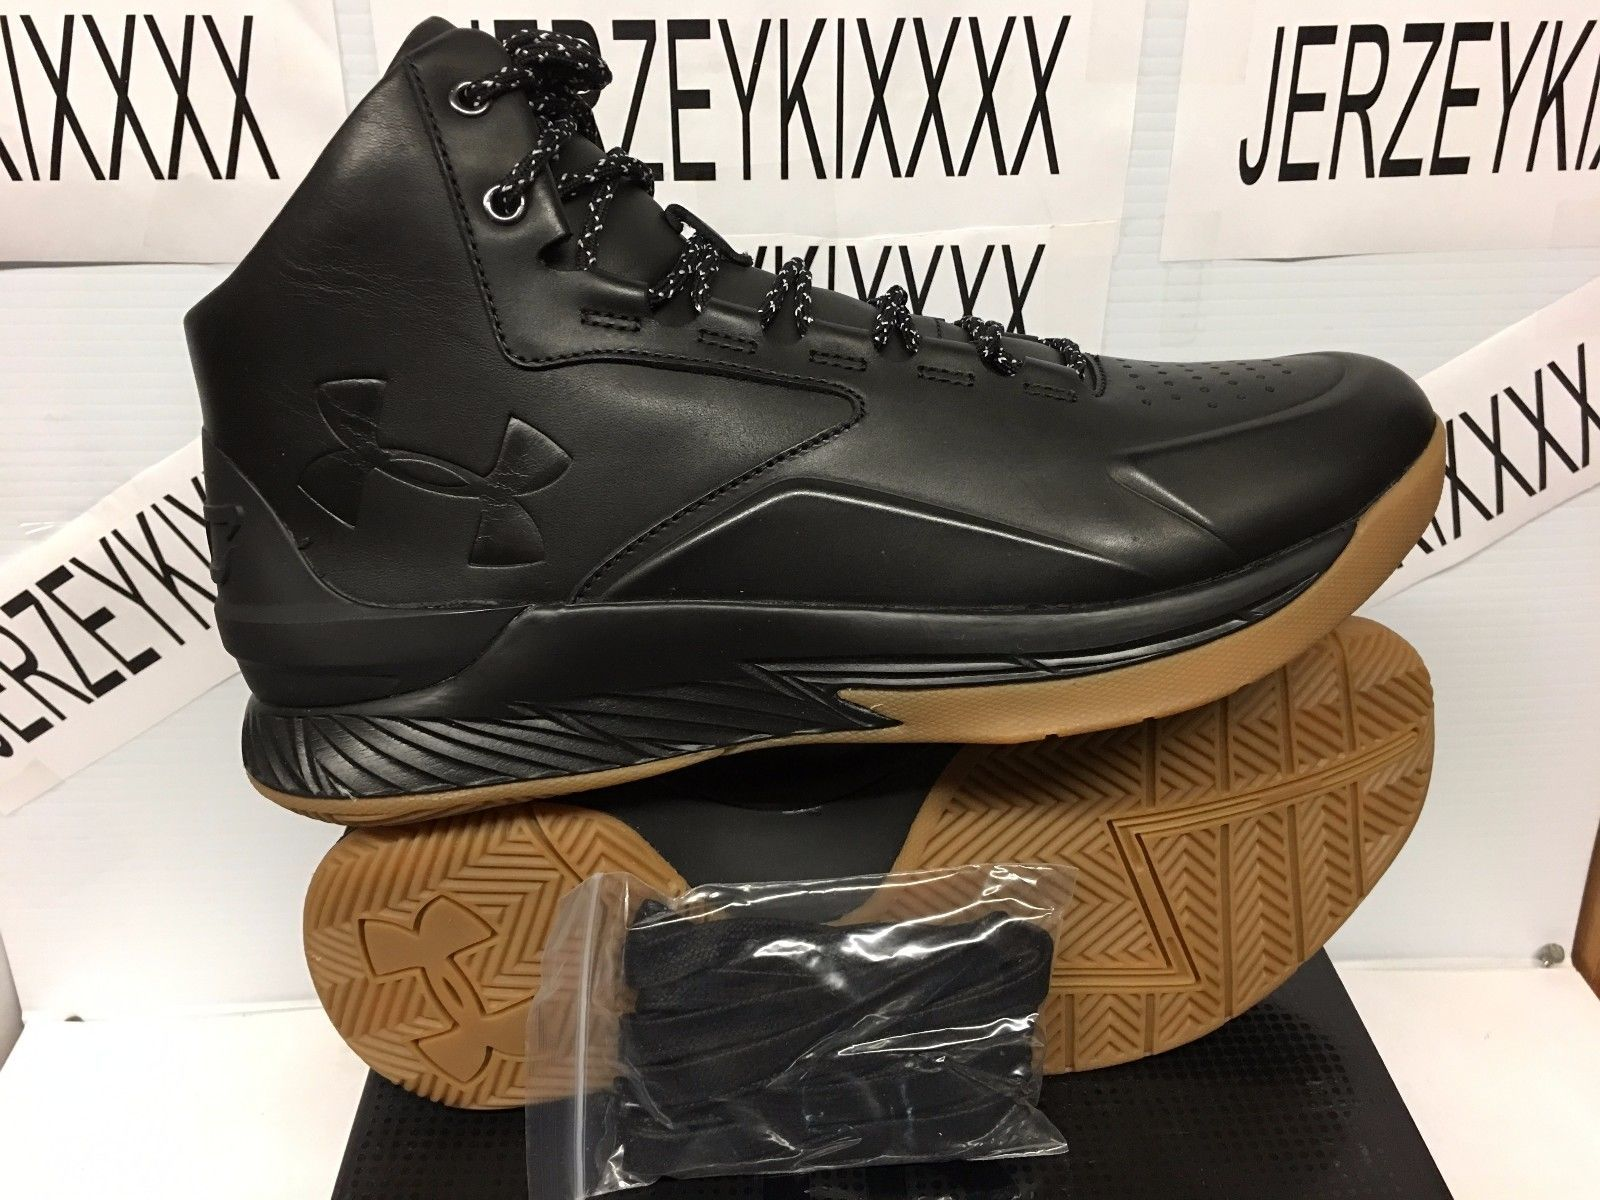 77103f11 NEW RARE MEN'S UNDER ARMOUR CURRY 1 LUX MID LEATHER BLACK GUM 1296616-001  10-11